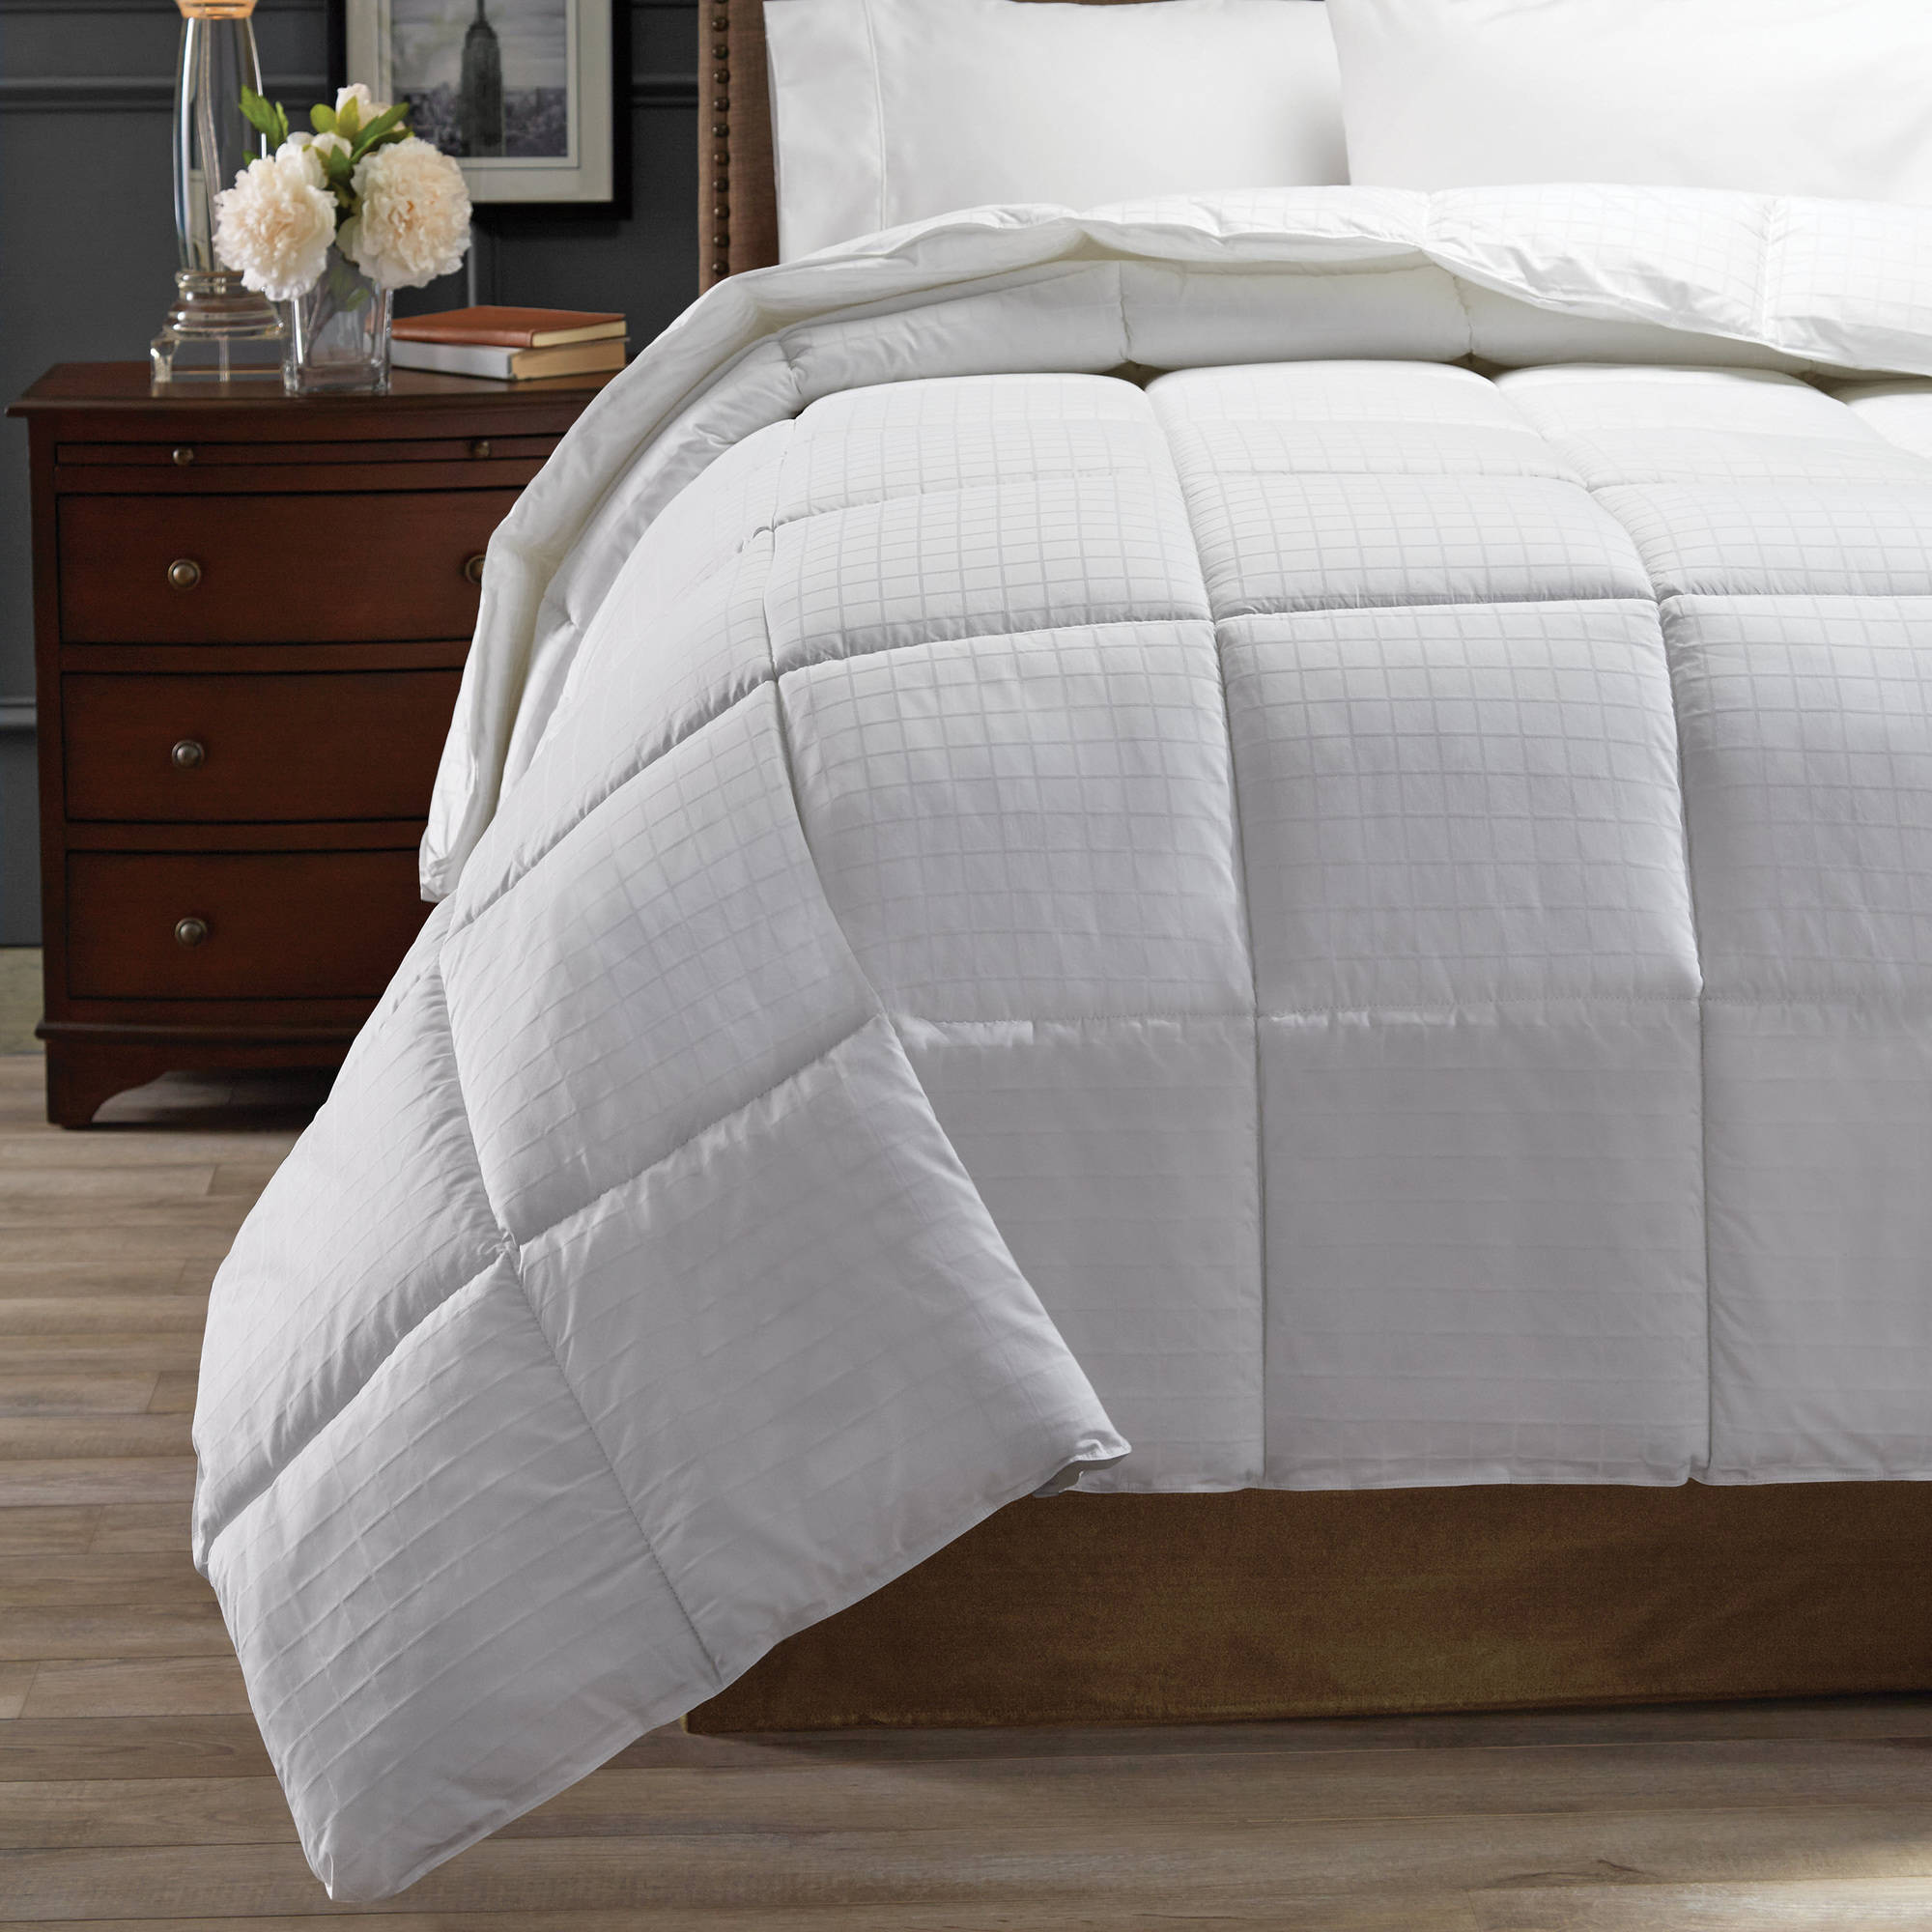 set bath vcny alternative home embossed today reversible classics nina free bedding shipping comforter down overstock product